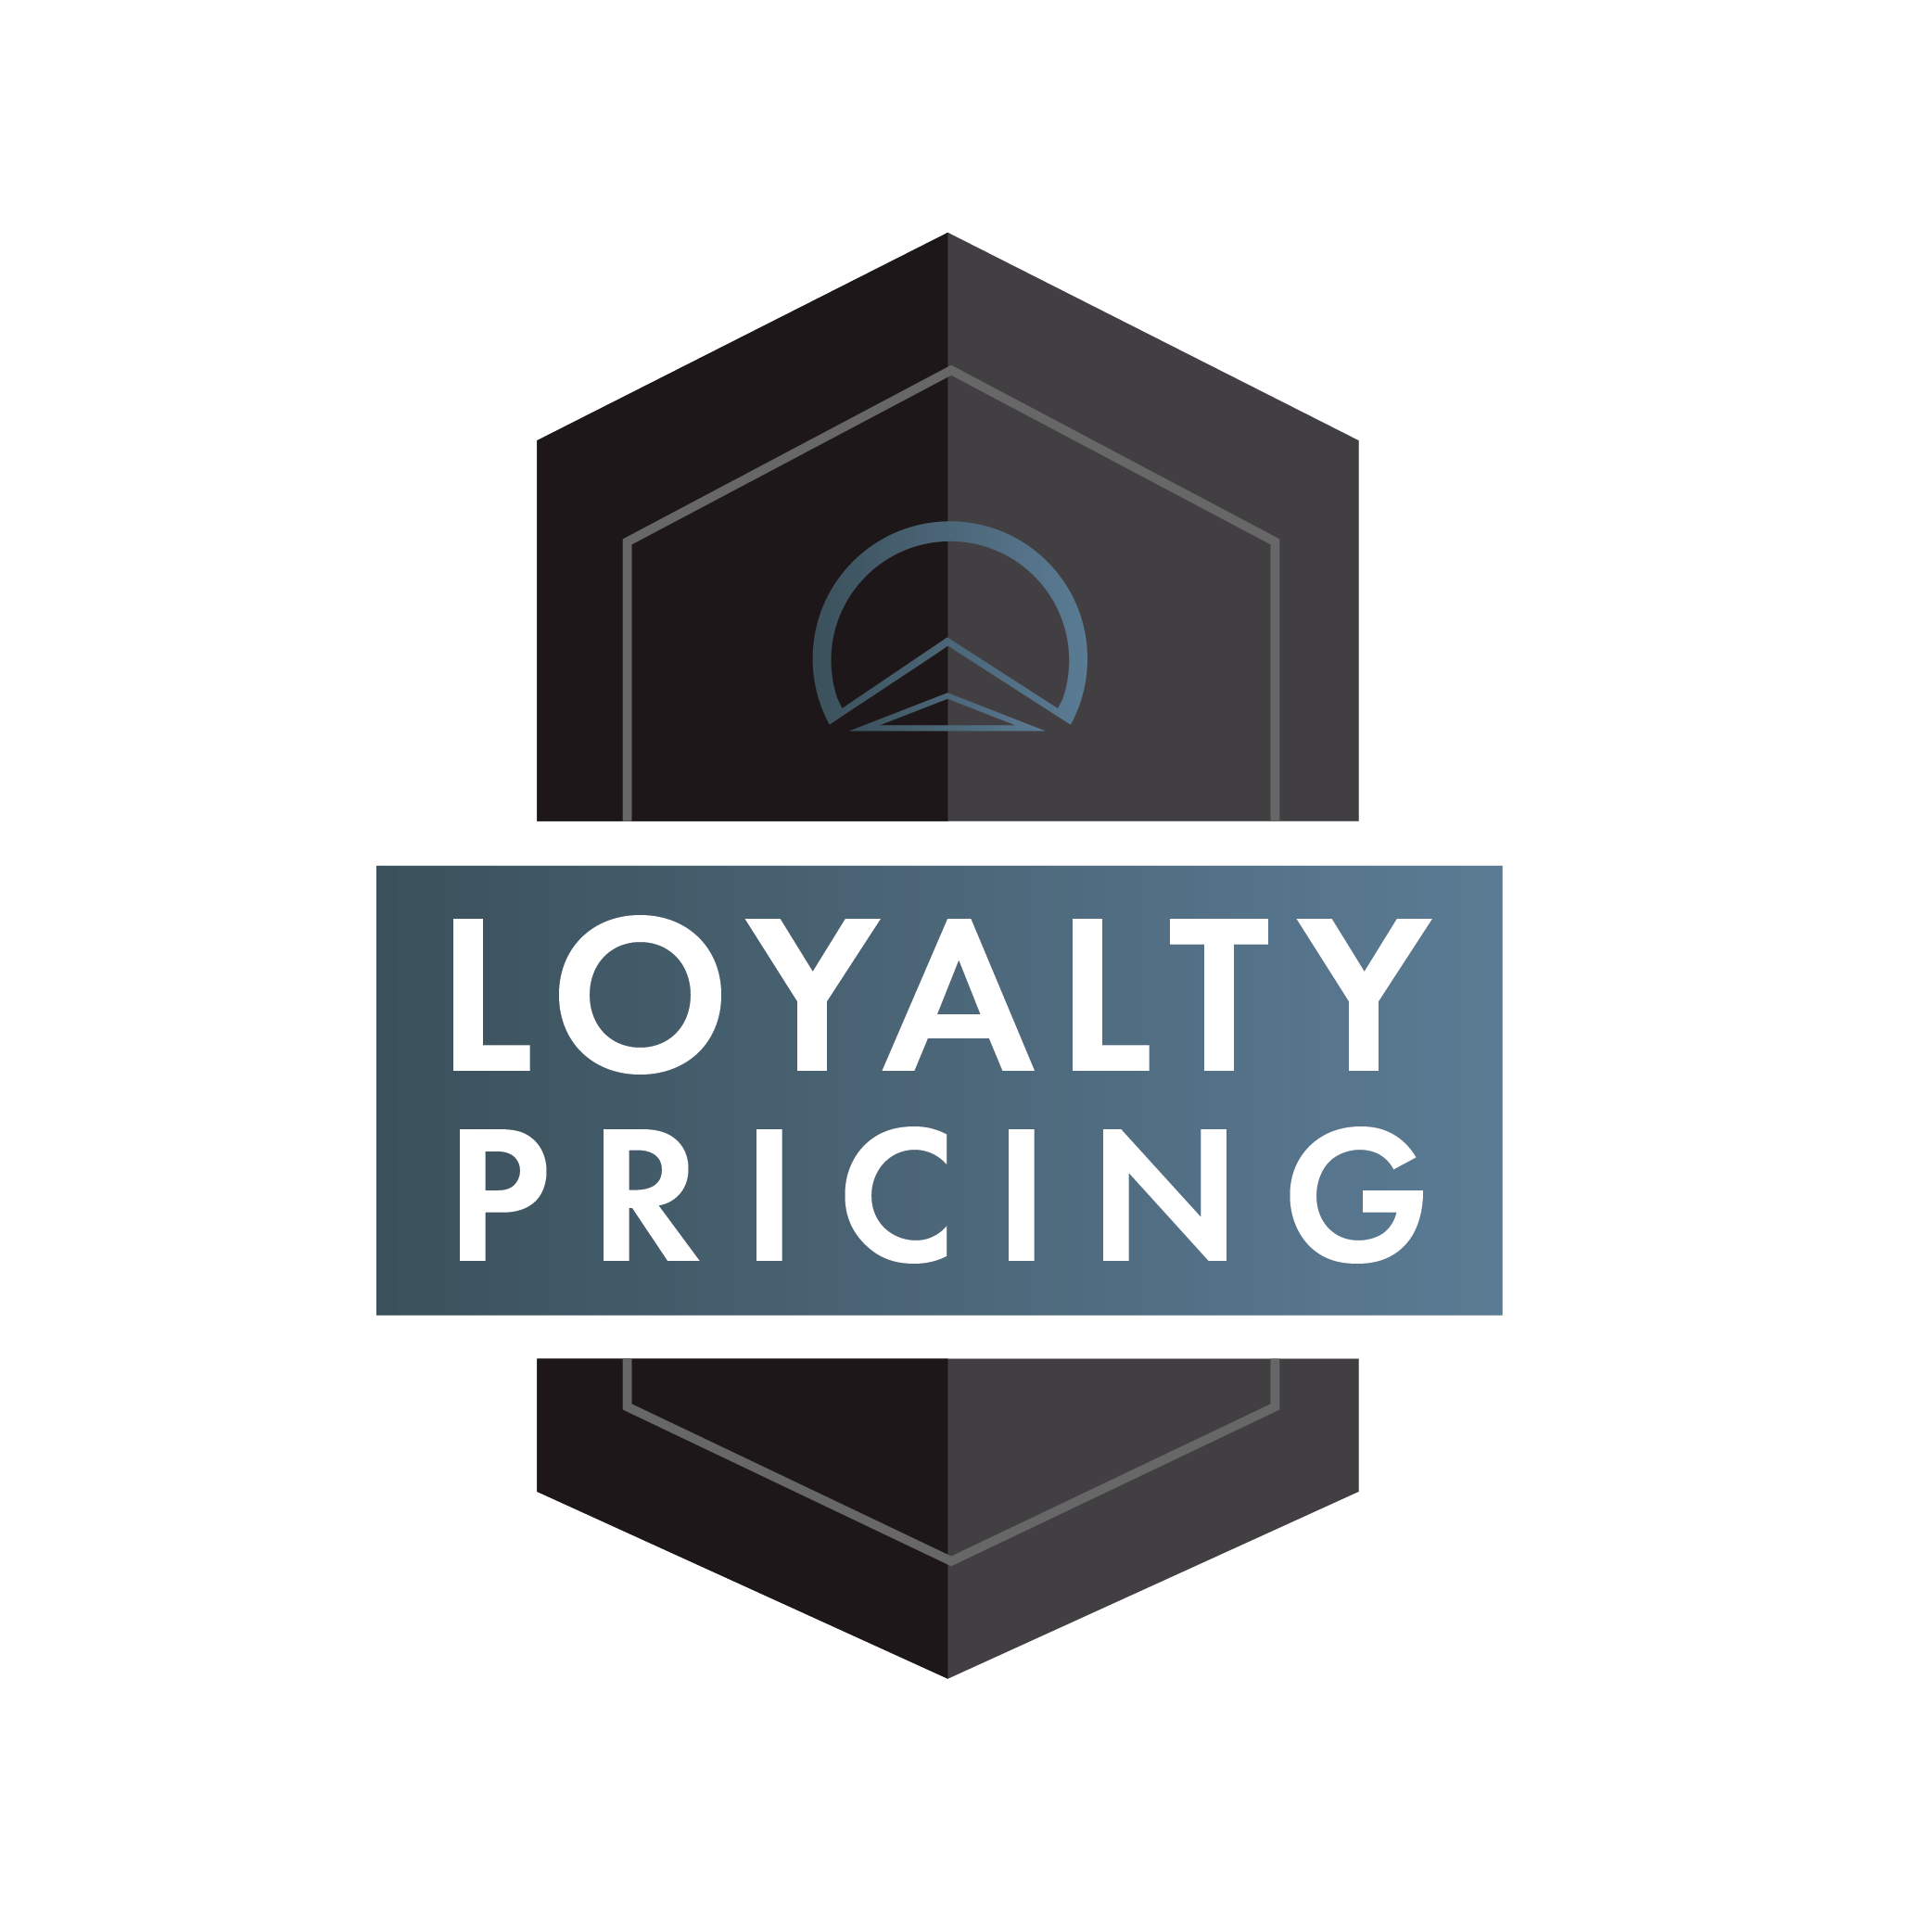 Loyalty Pricing image